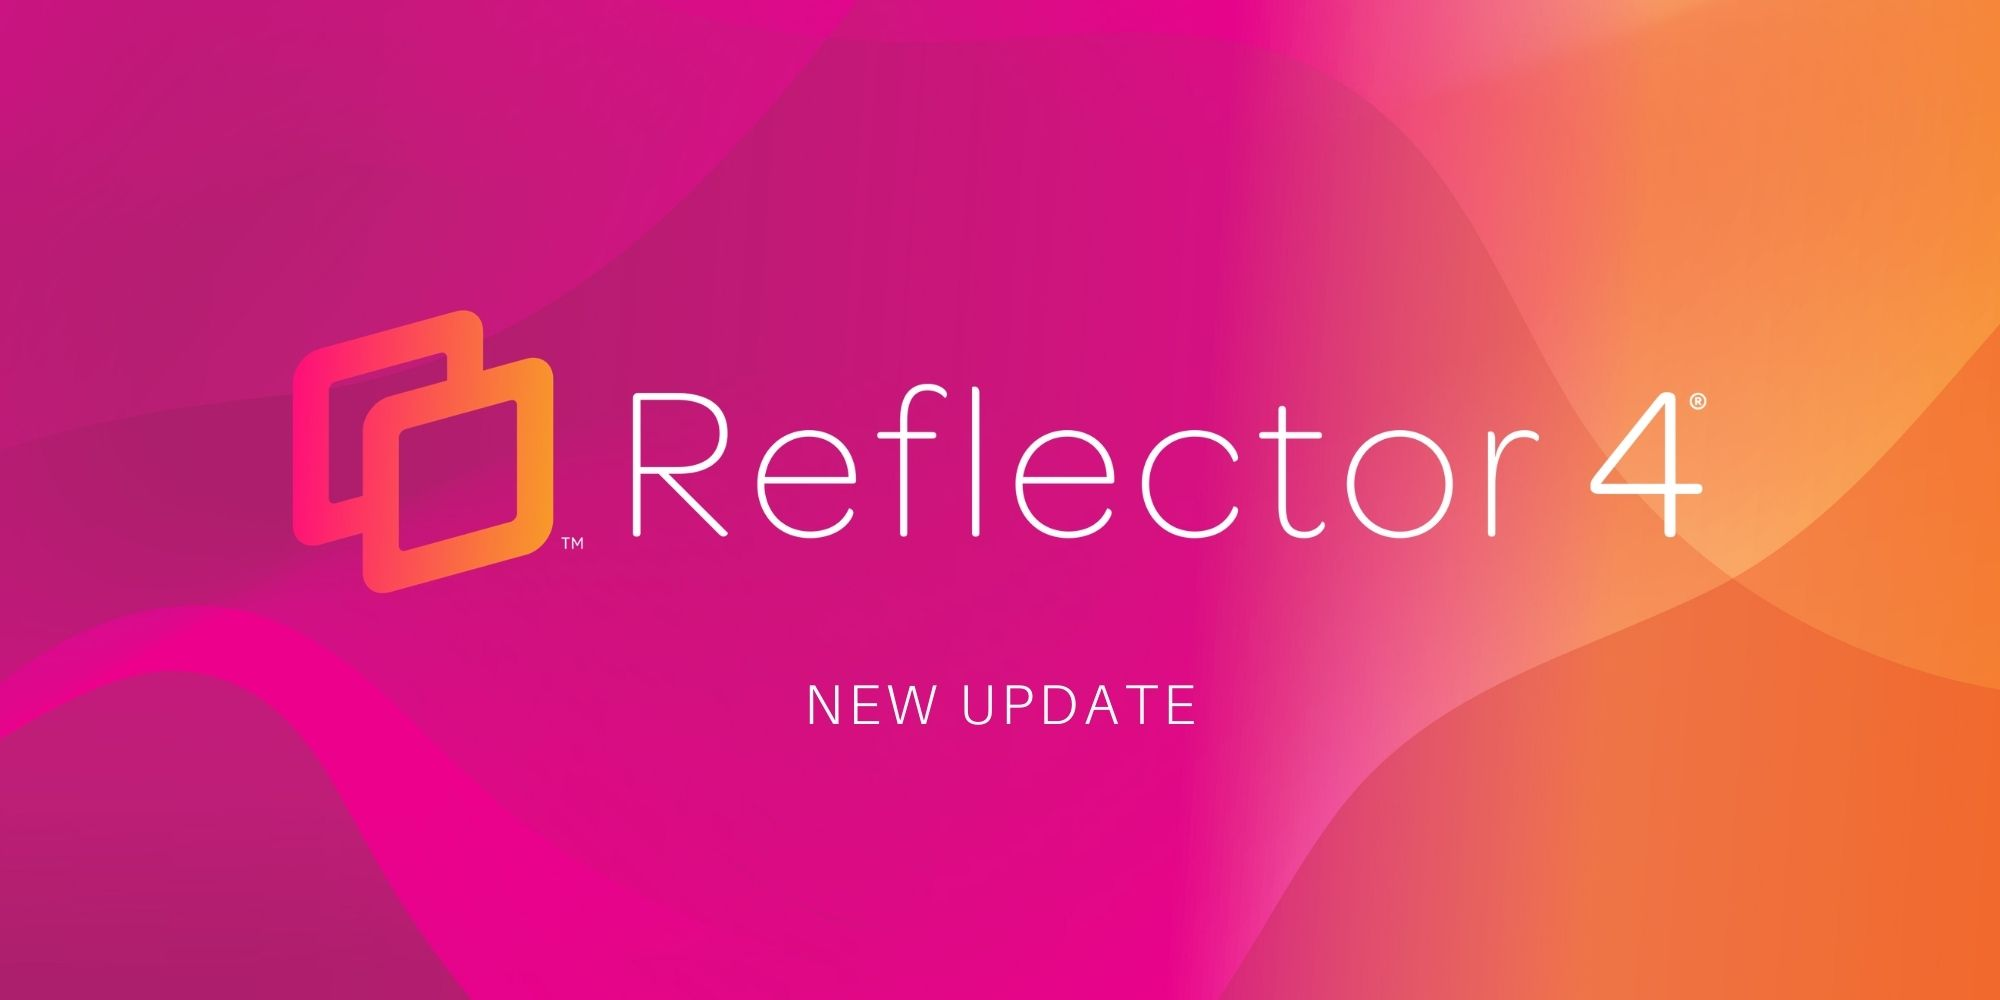 Reflector 4 is Now Available